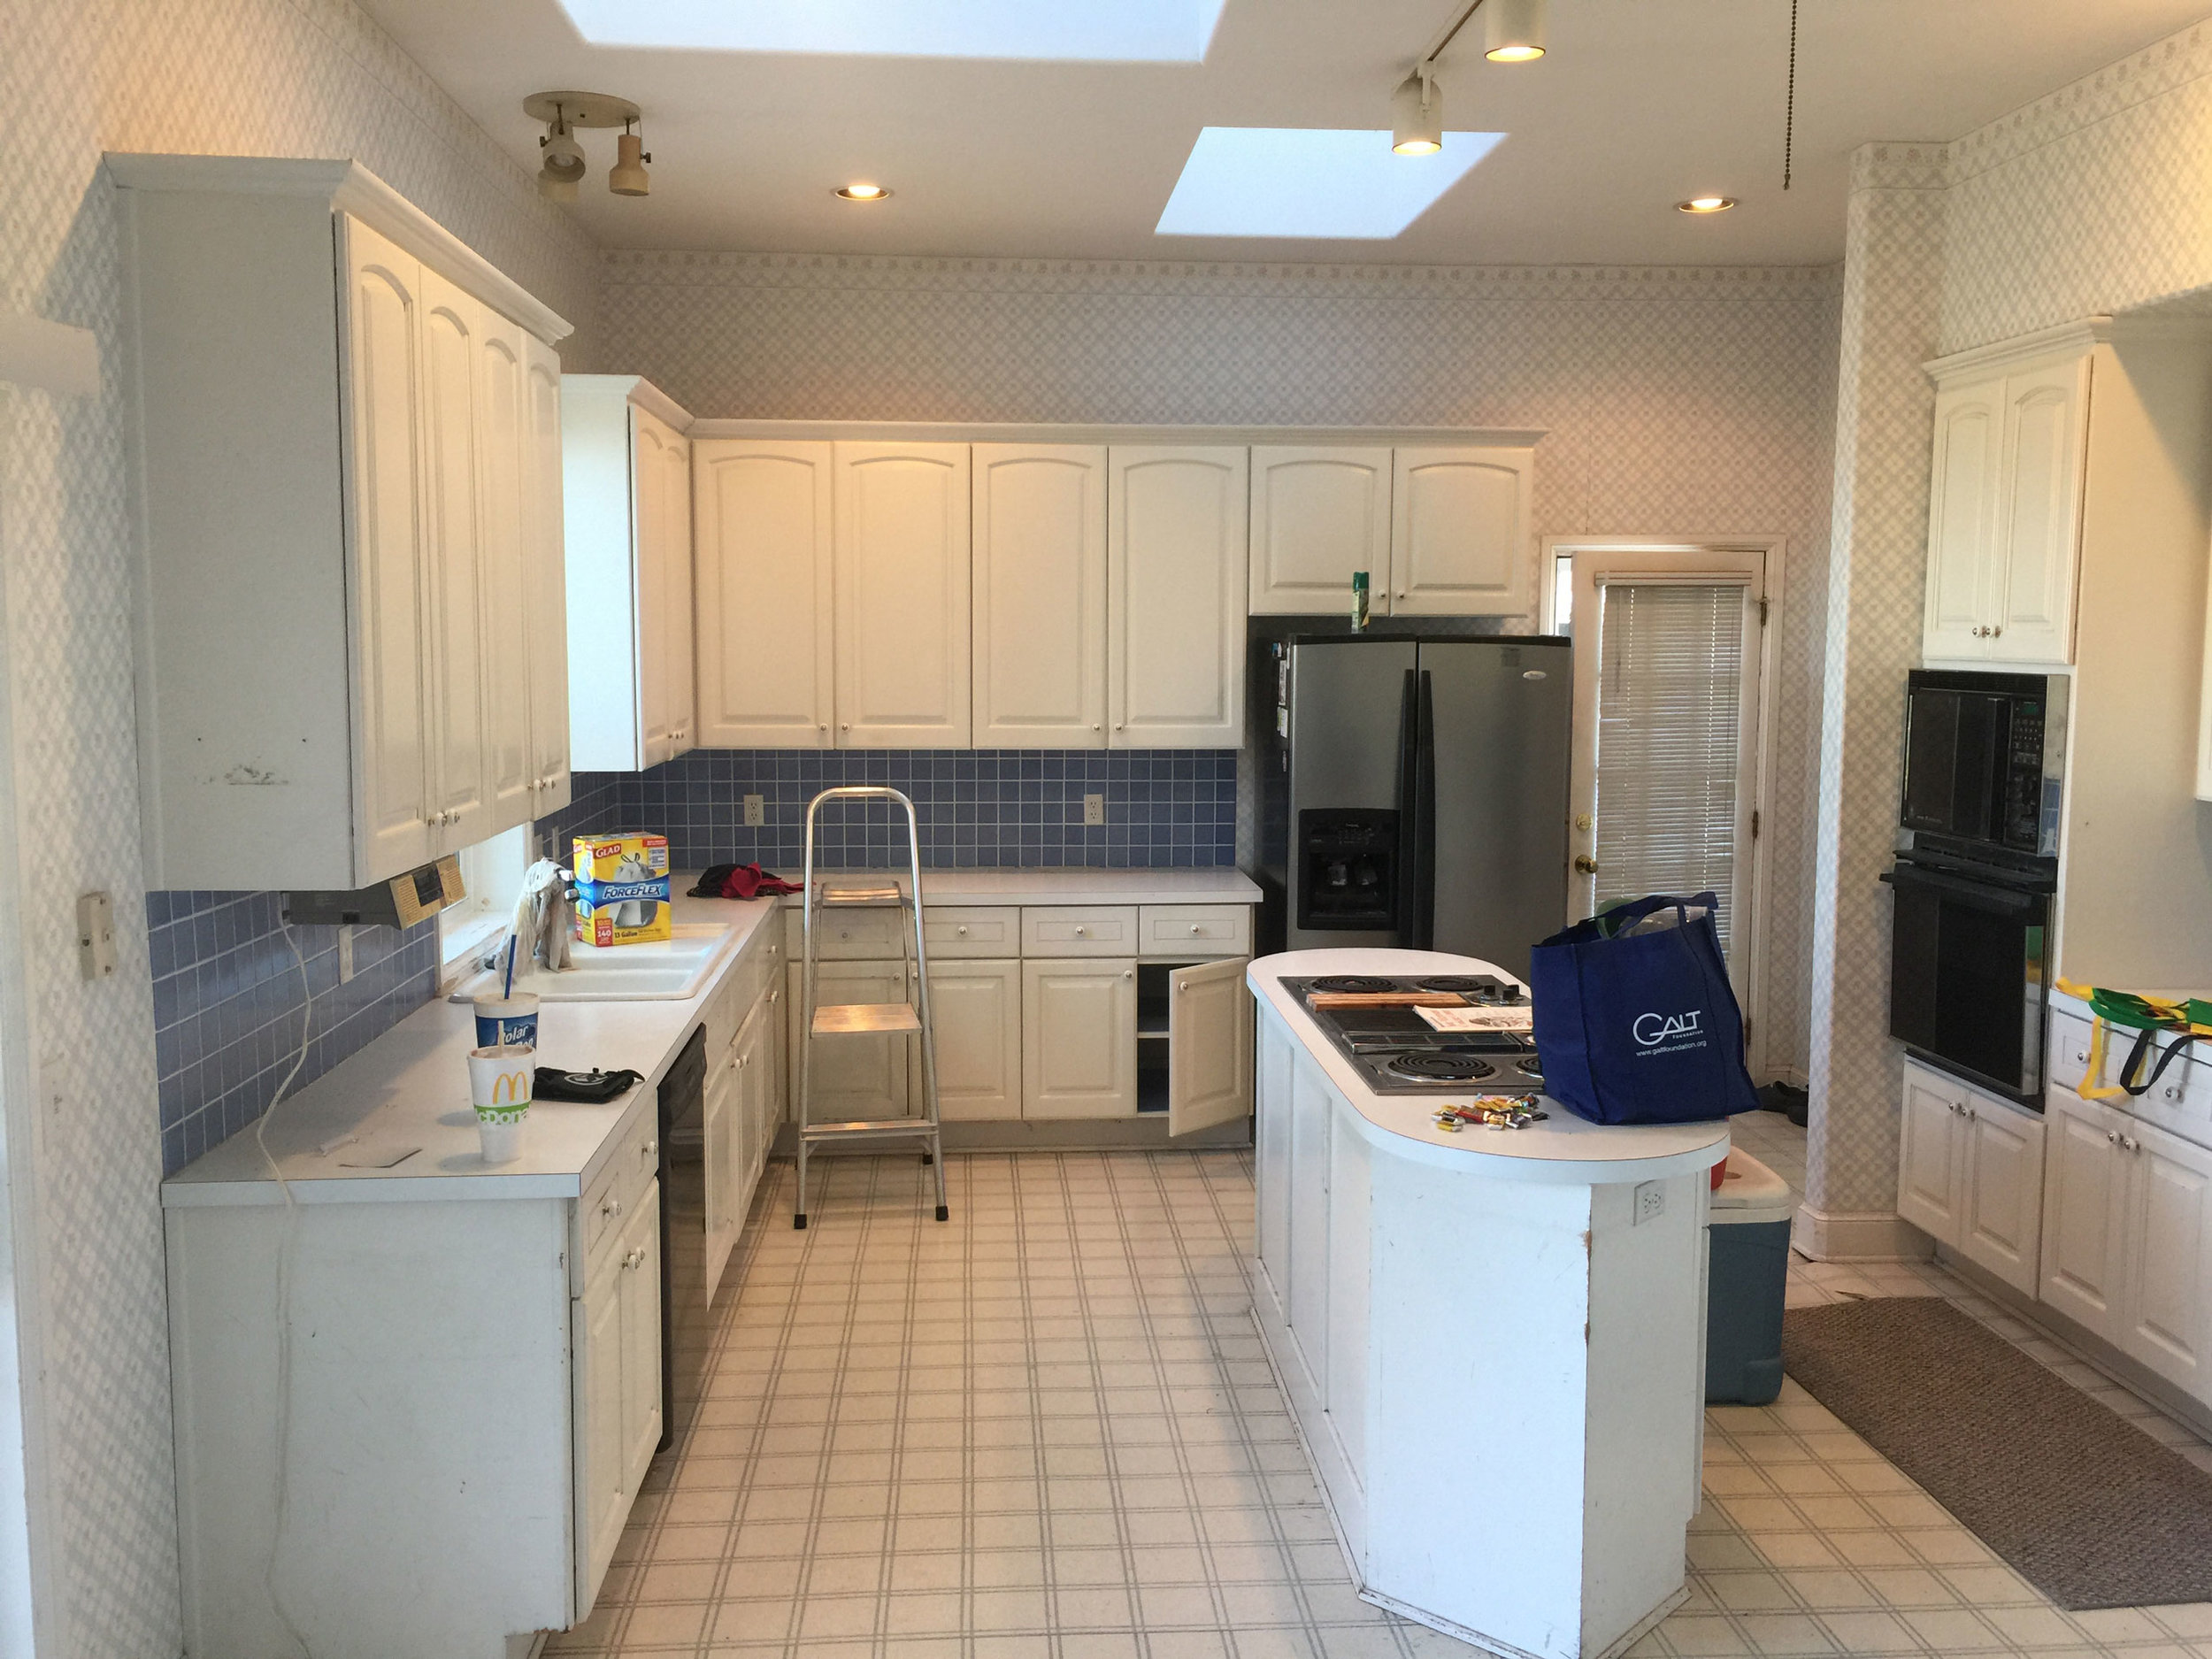 Kitchen Remodel with Foundation Repairs Before